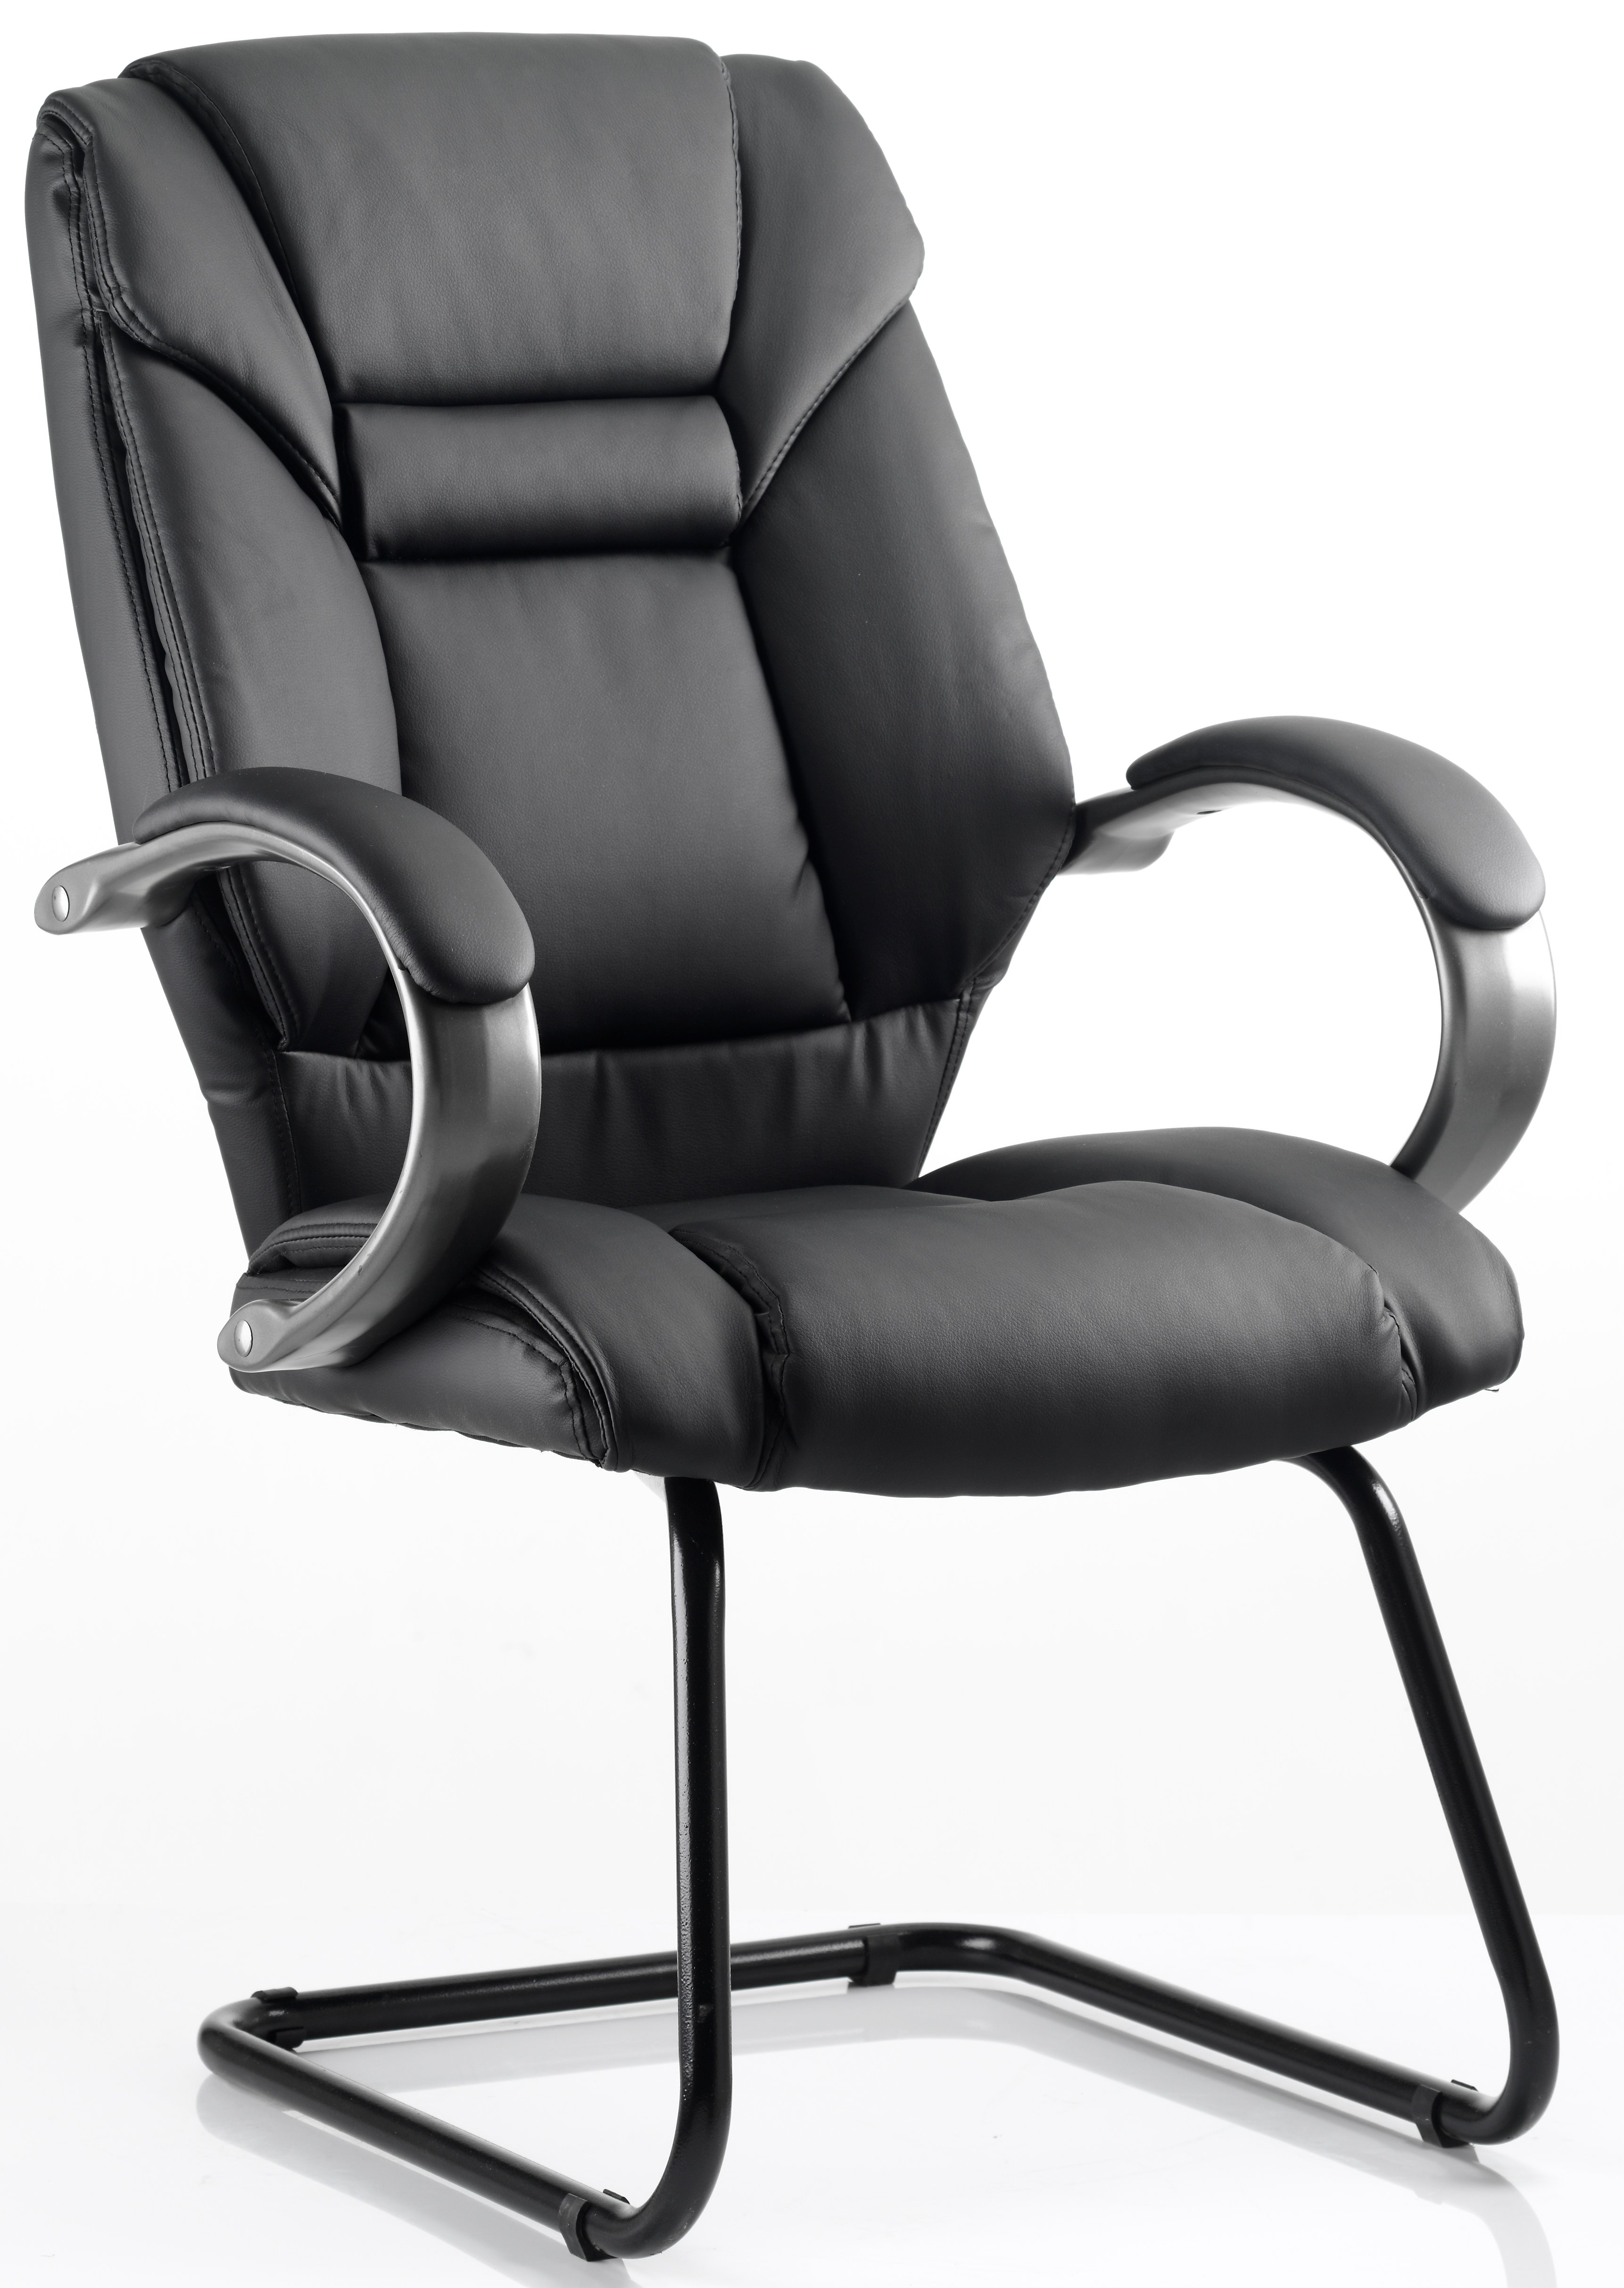 Garvi cantilever frame black bonded leather chair